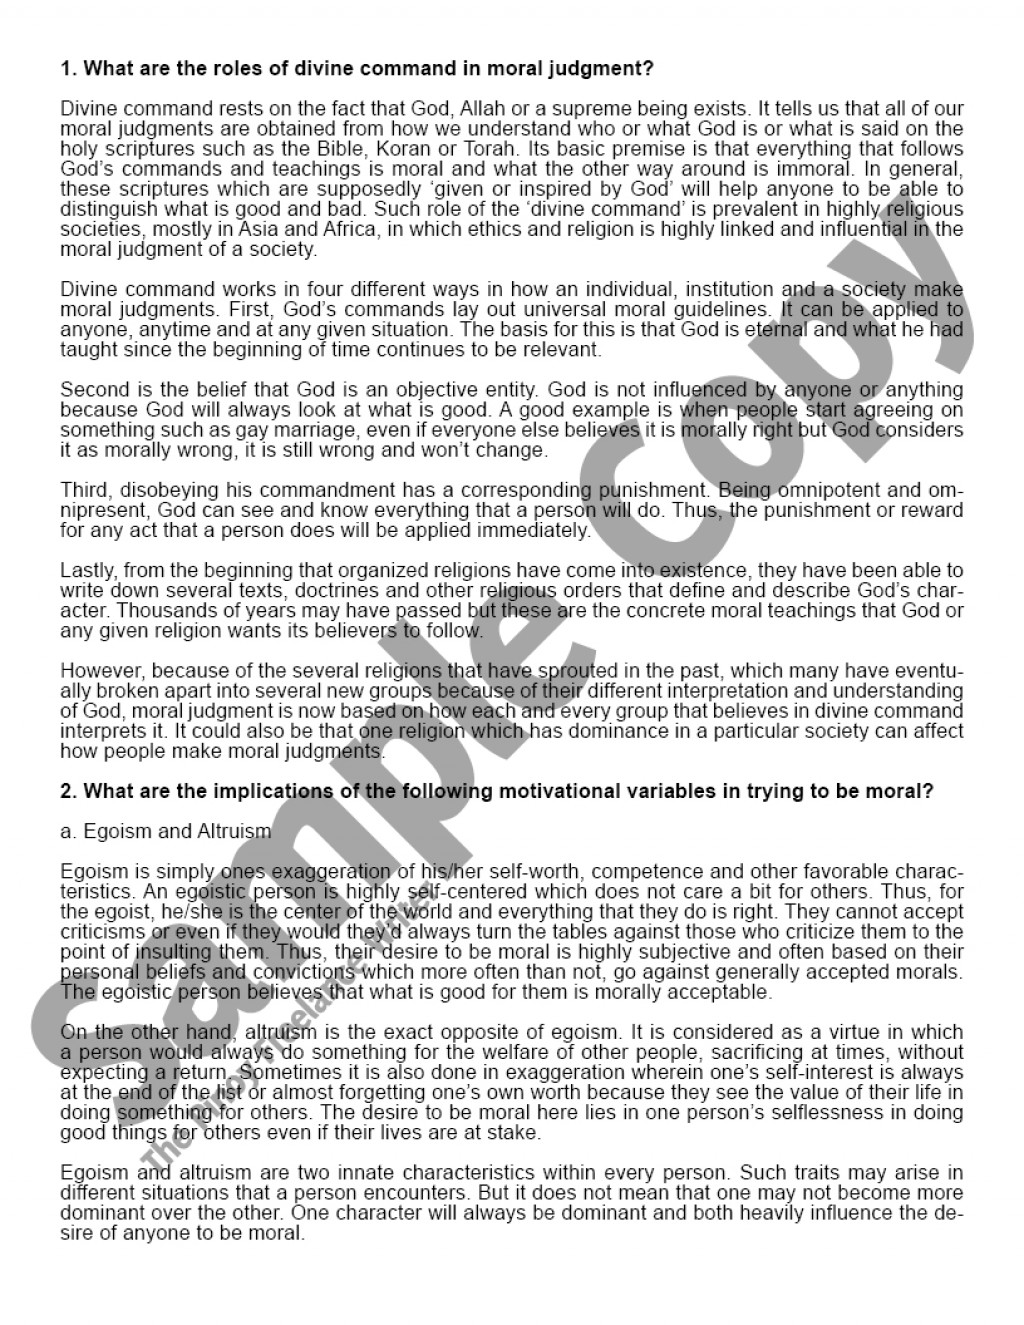 022 Research Paper Sample Essay For Fascinating Sale On Sales Promotion Strategies Topics Salem Witch Trials And Distribution Management Large